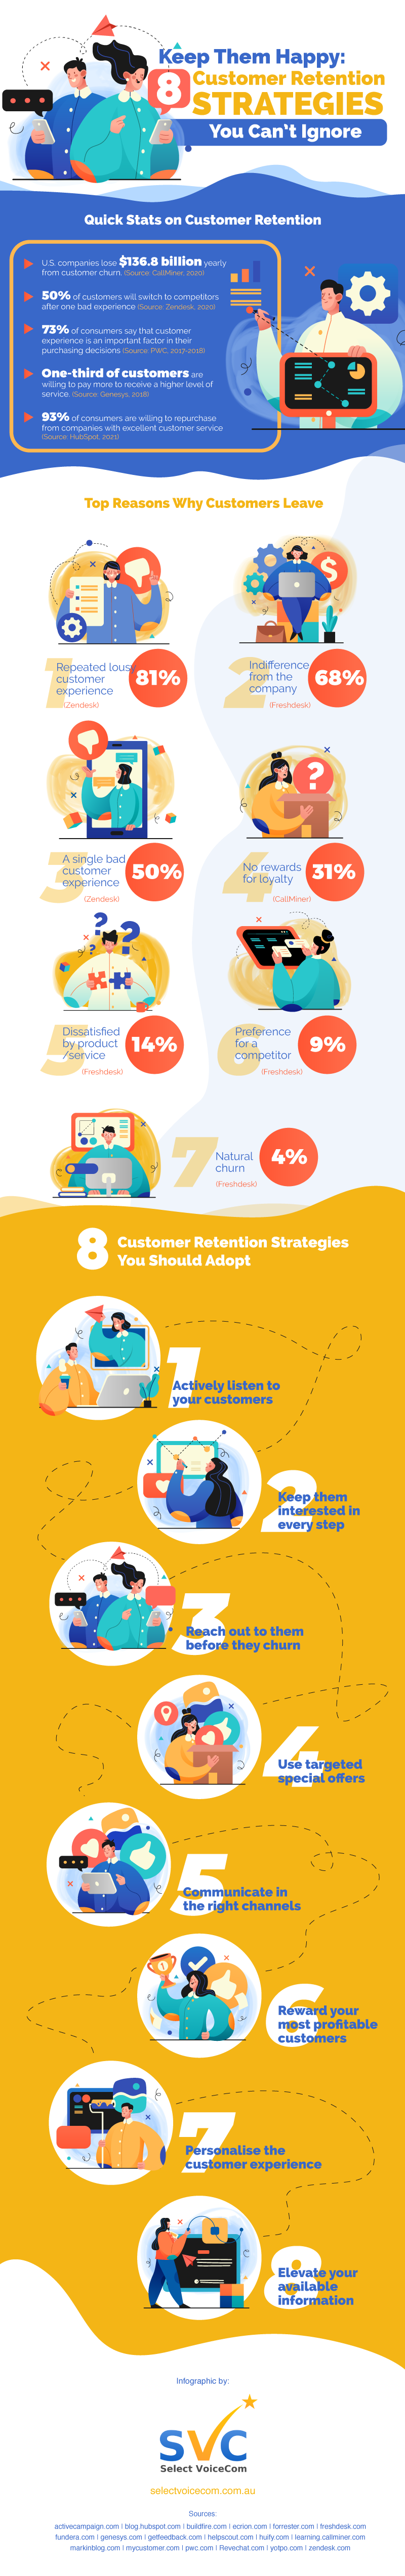 Keep Them Happy: 8 Customer Retention Strategies You Can't Ignore